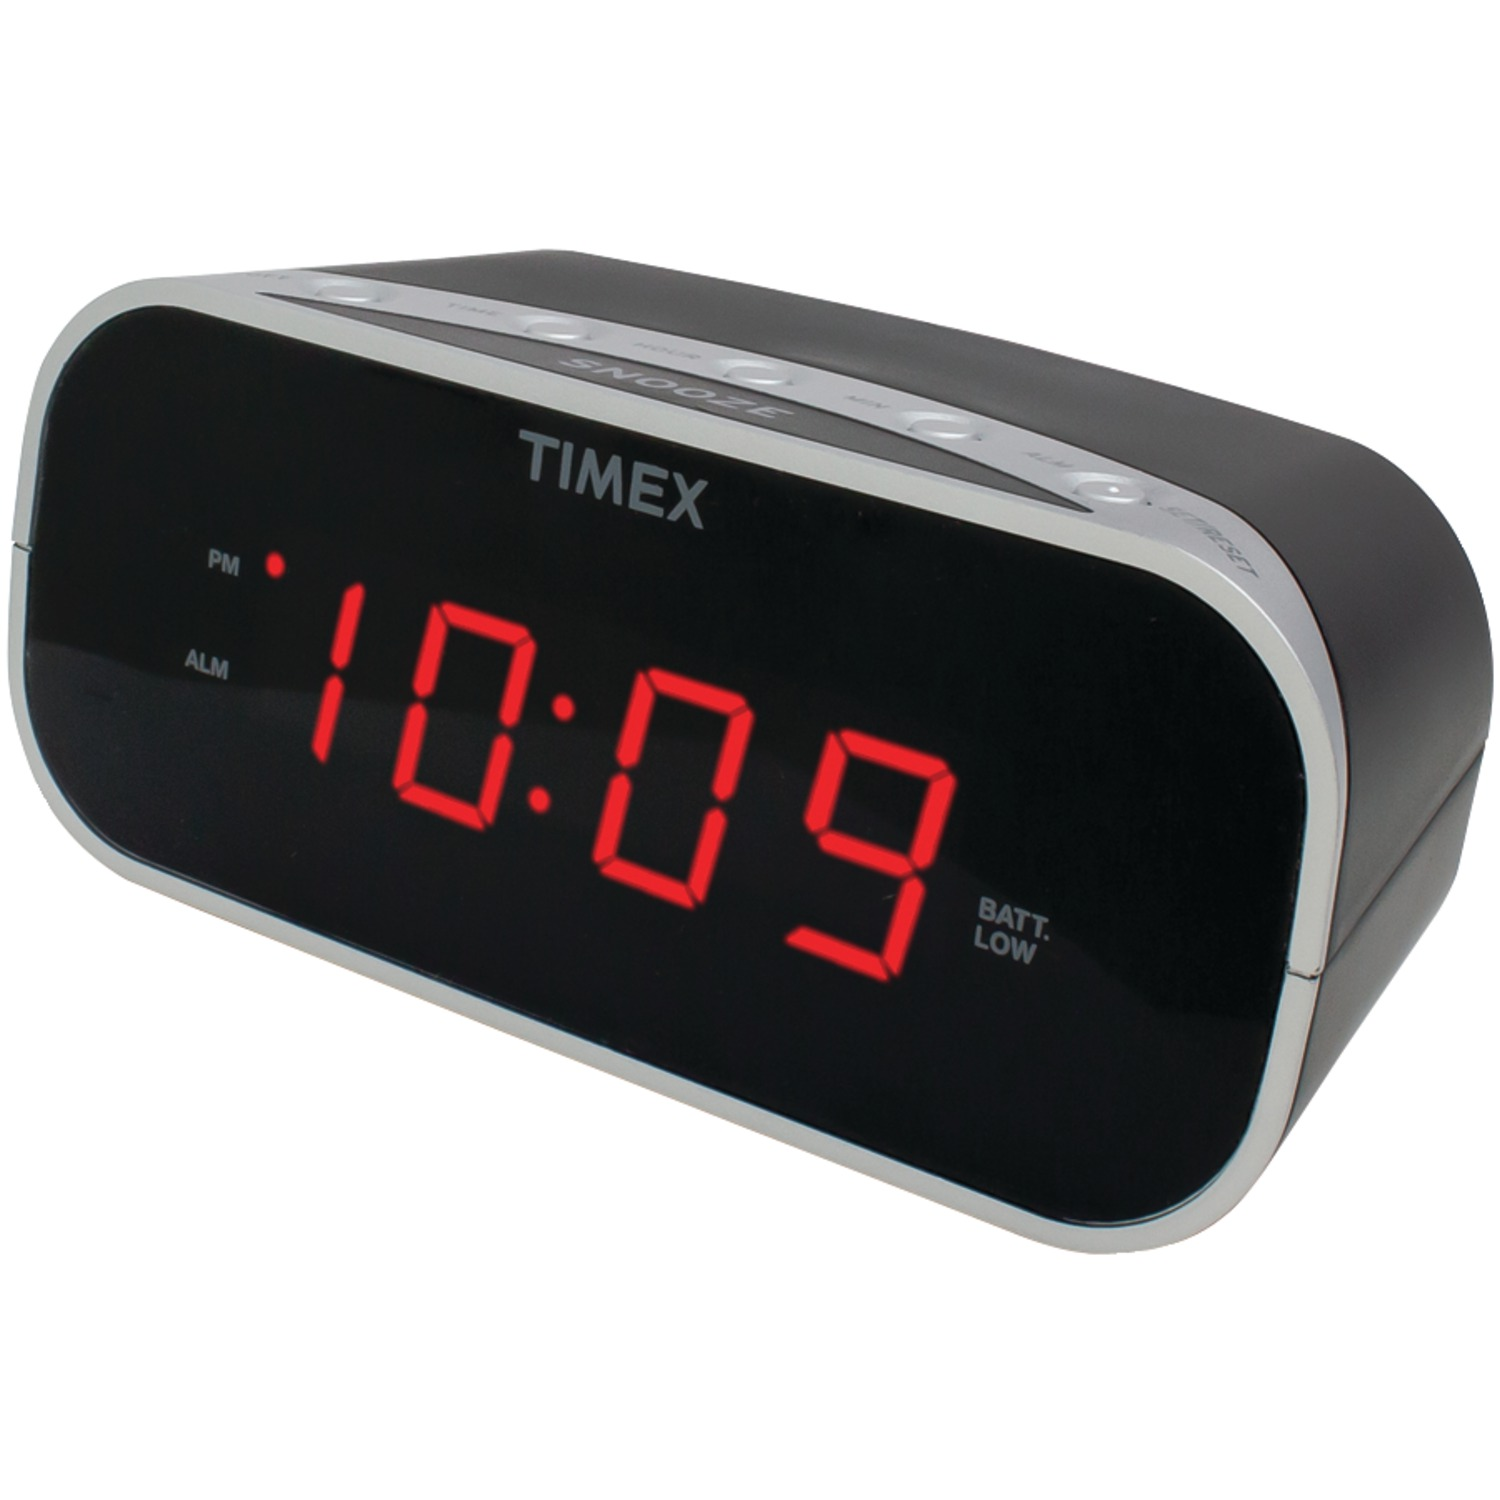 "Timex Audio T121B Alarm Clock with .7"" Red Display (Black)"